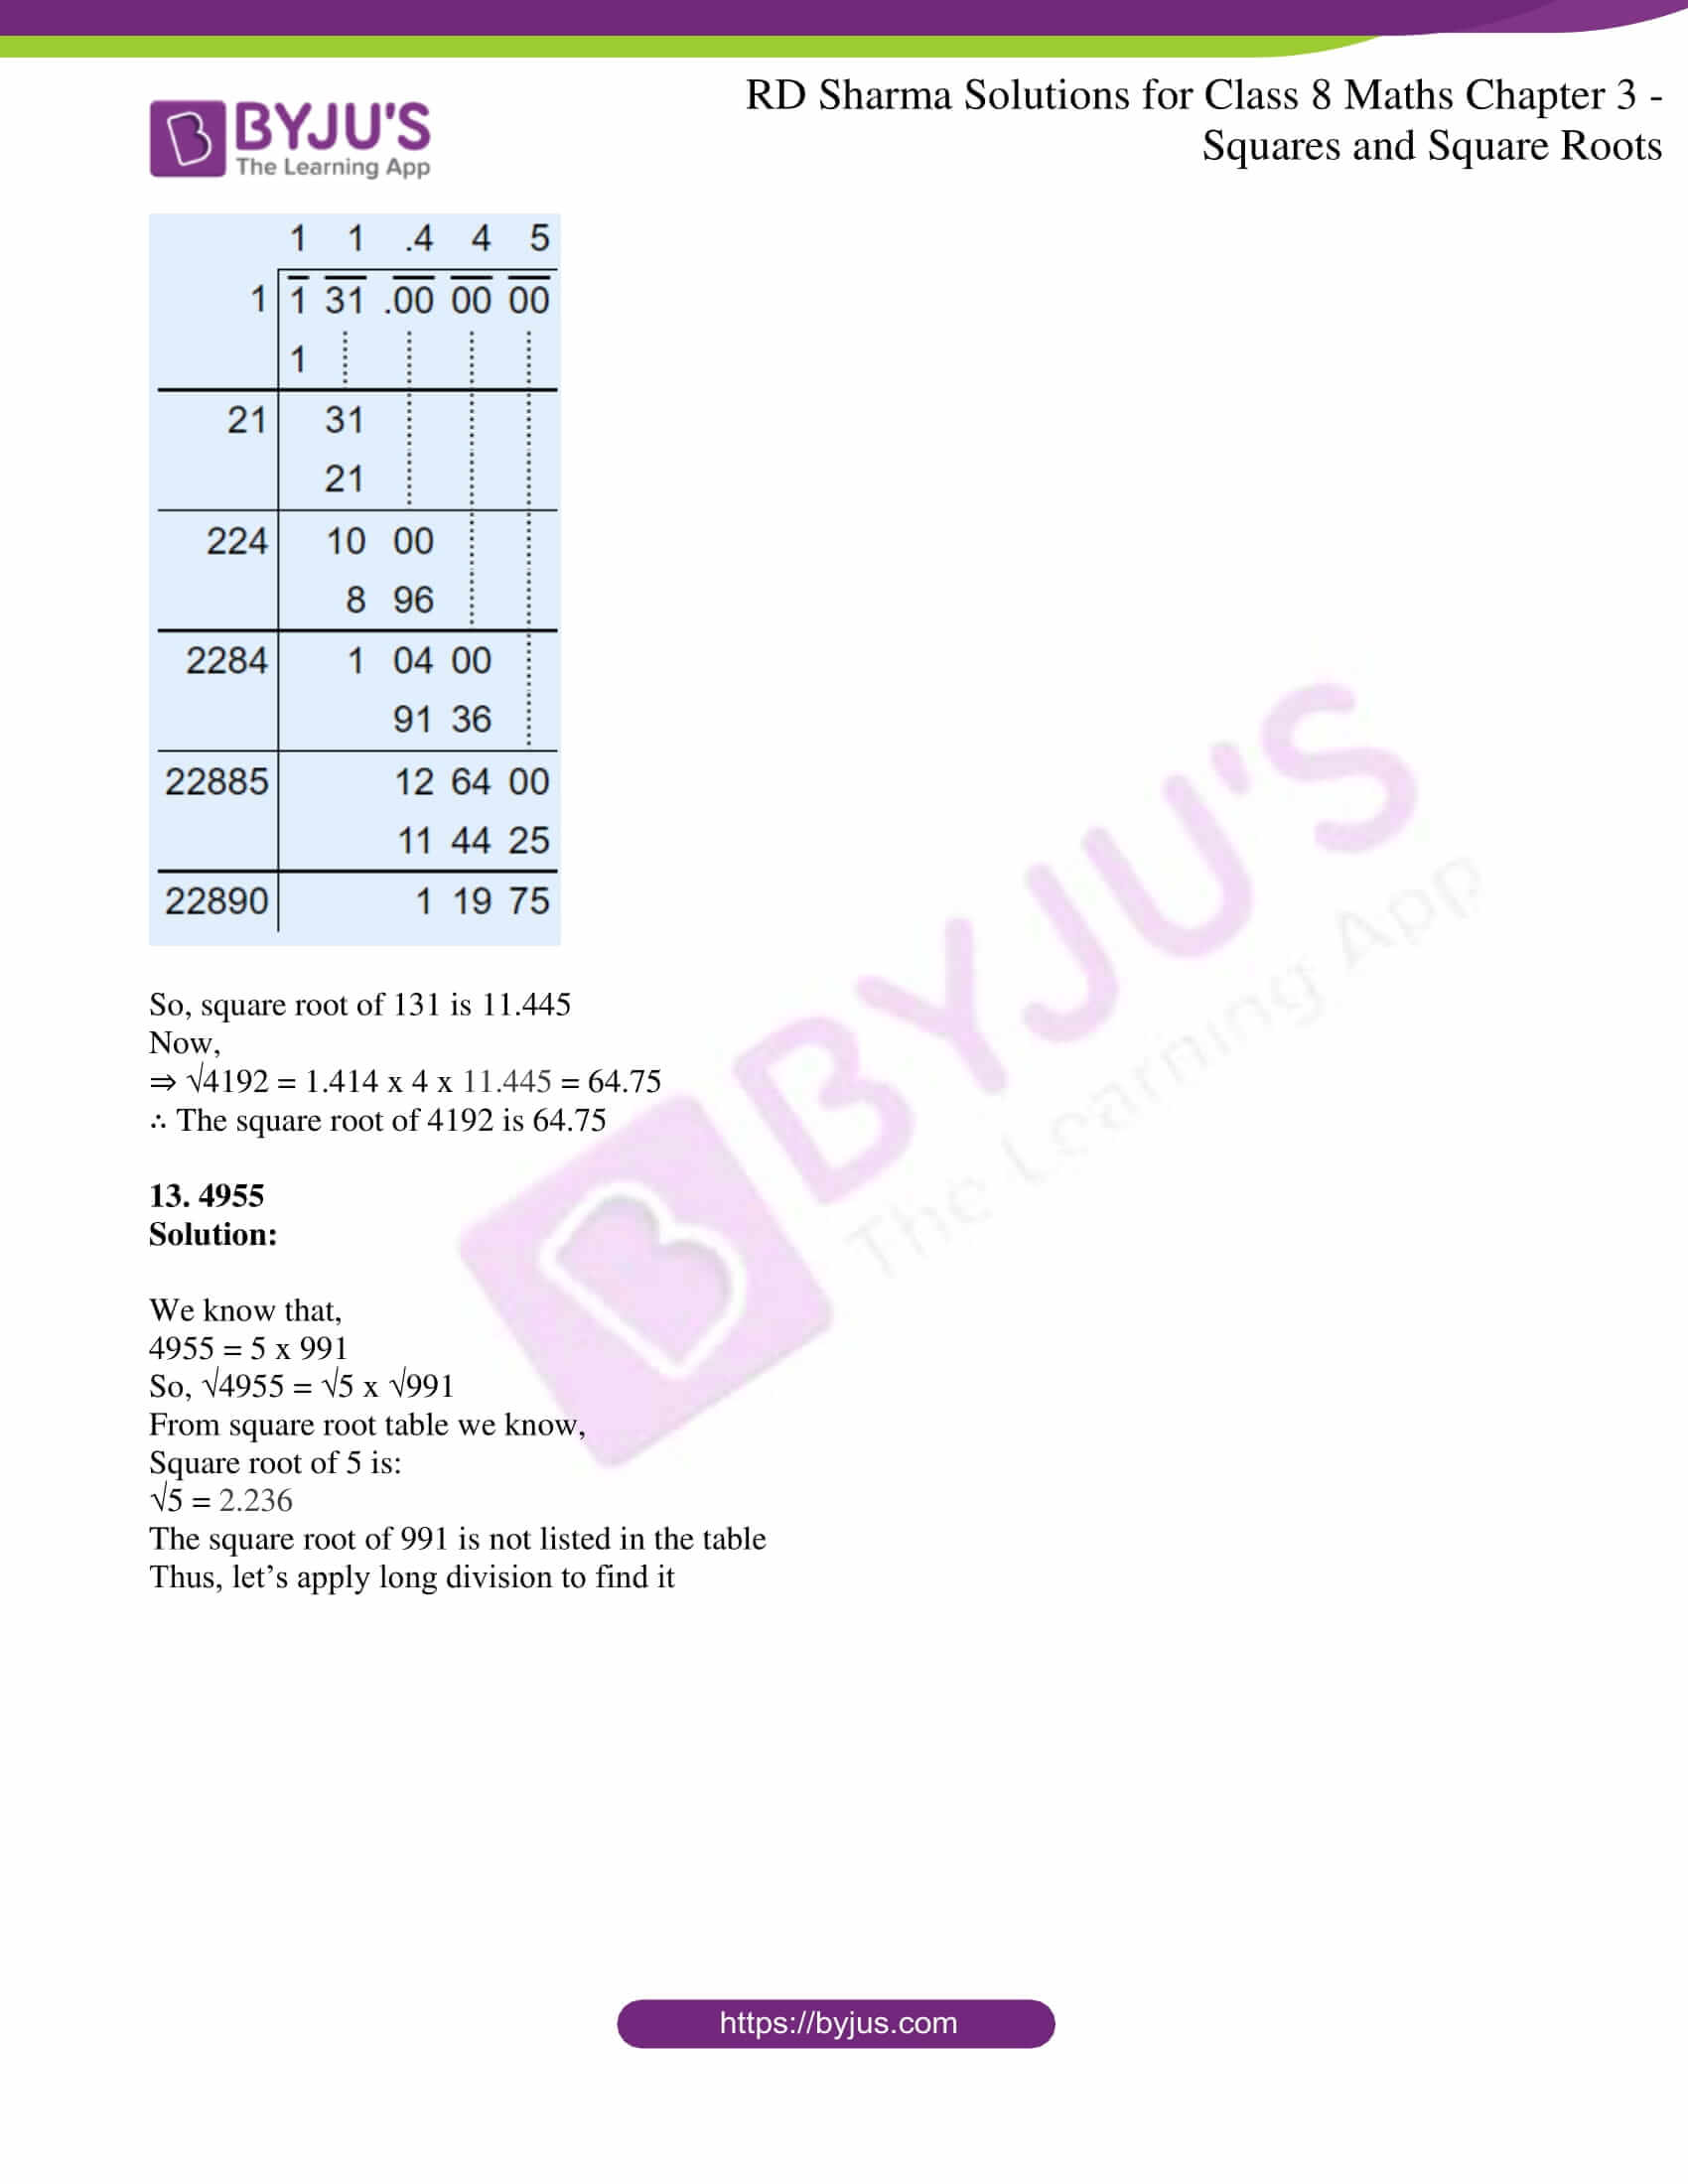 rd sharma solutions jul26 class 8 maths chapter 3 squares and square roots exercise 3 9 5